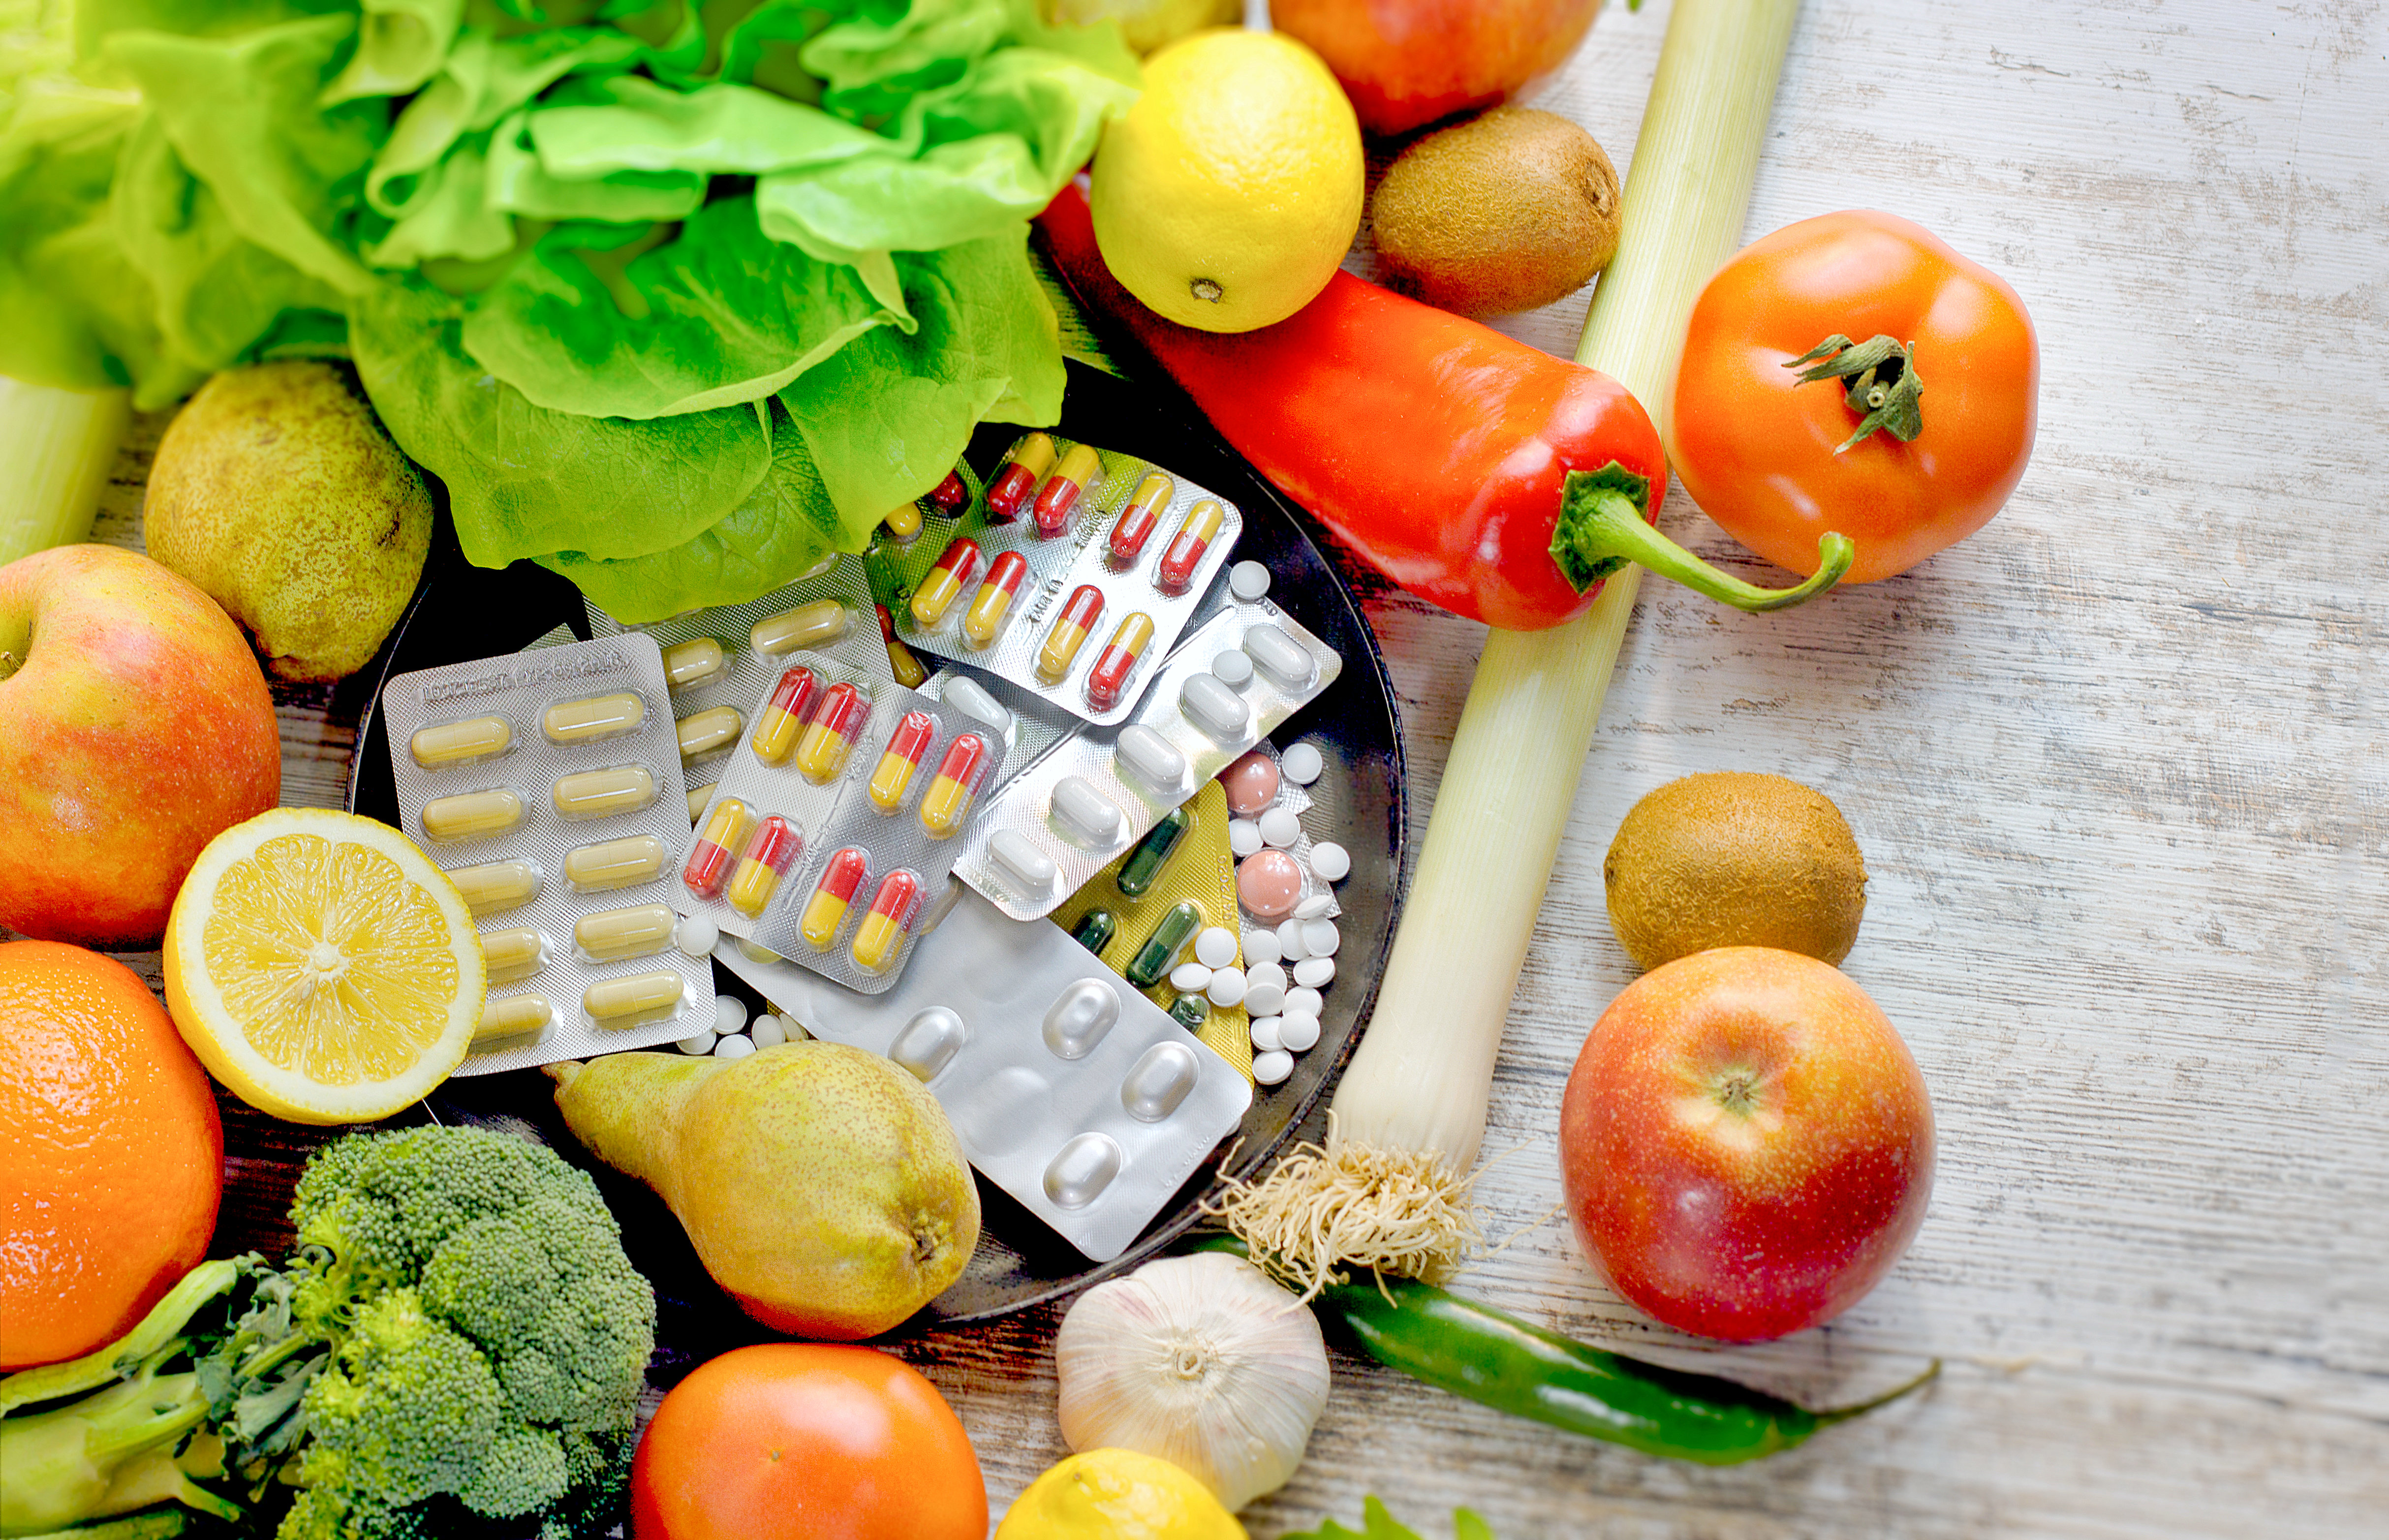 eating organic fruit and vegetable and nutrition supplement in proper diet